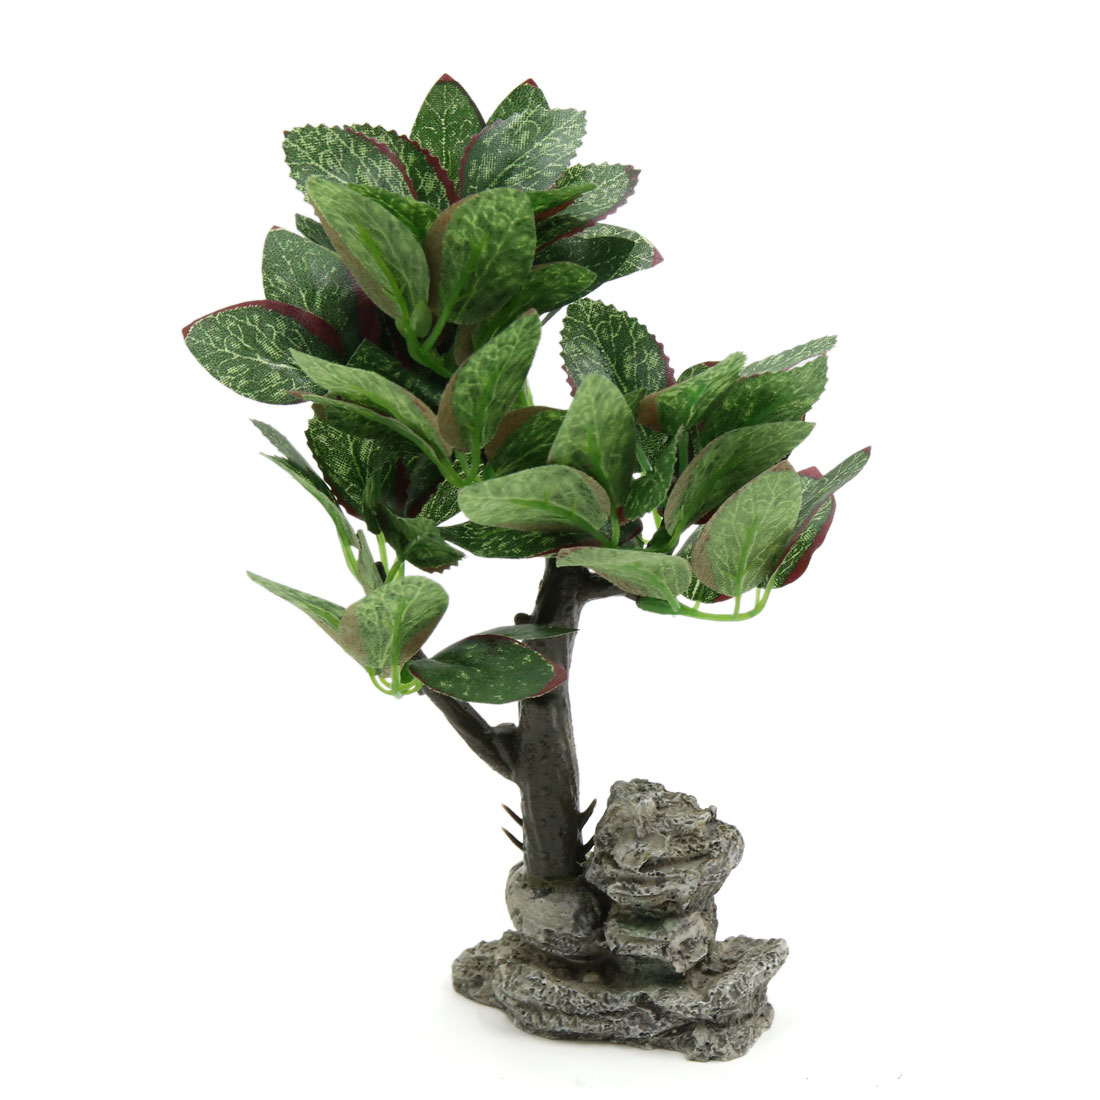 Lifelike Plants Green Plastic Decorative Lifelike Tree Plant Ornament For